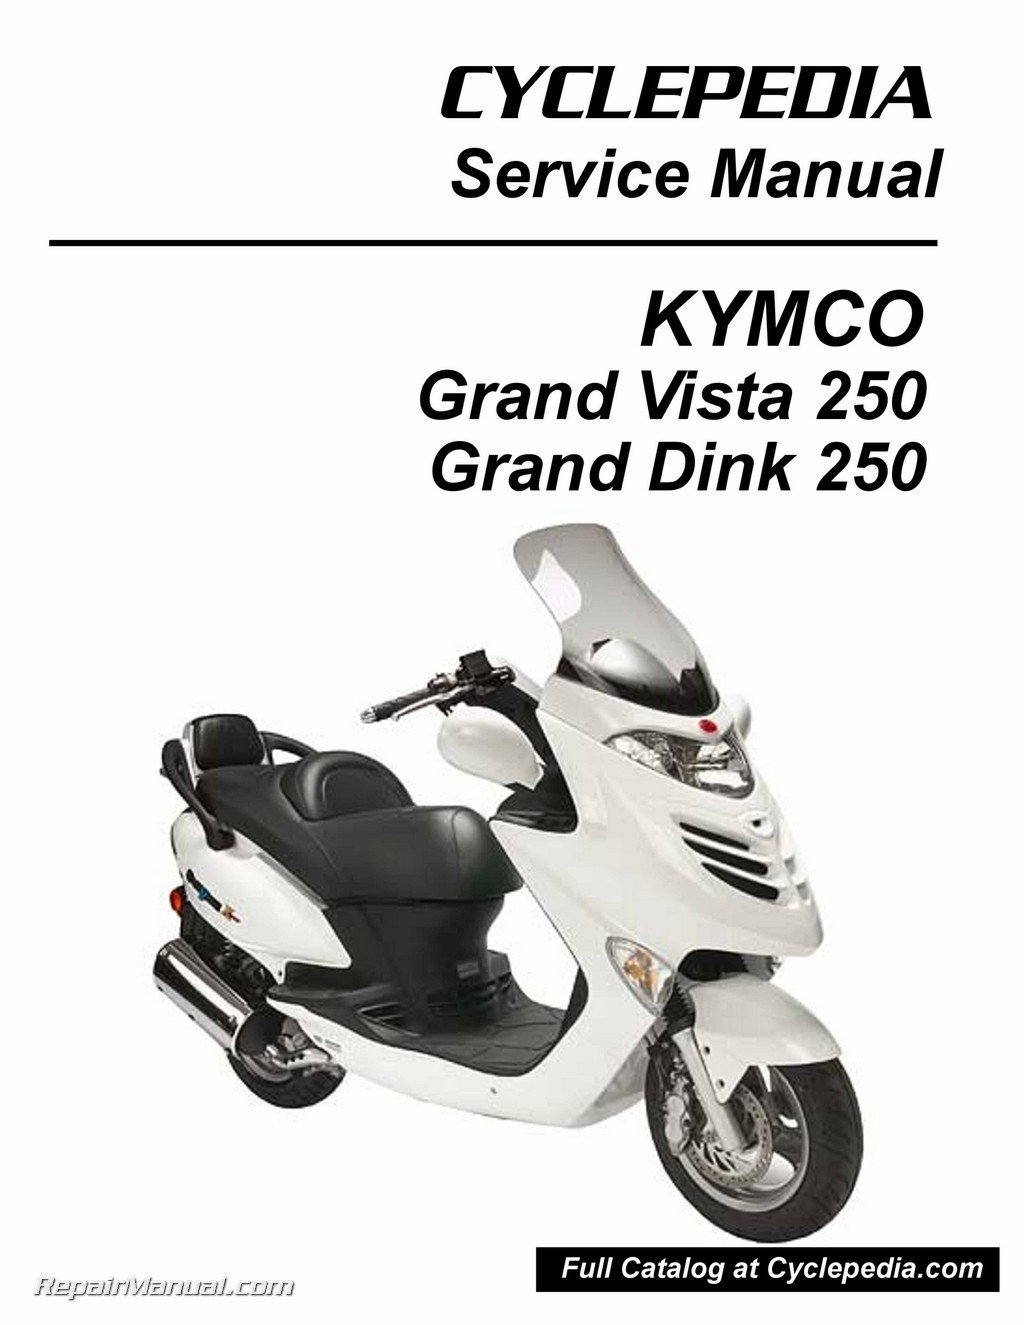 CPP-213-Print KYMCO Grand Vista 250 Service Manual Printed by CYCLEPEDIA:  Manufacturer: Amazon.com: Books